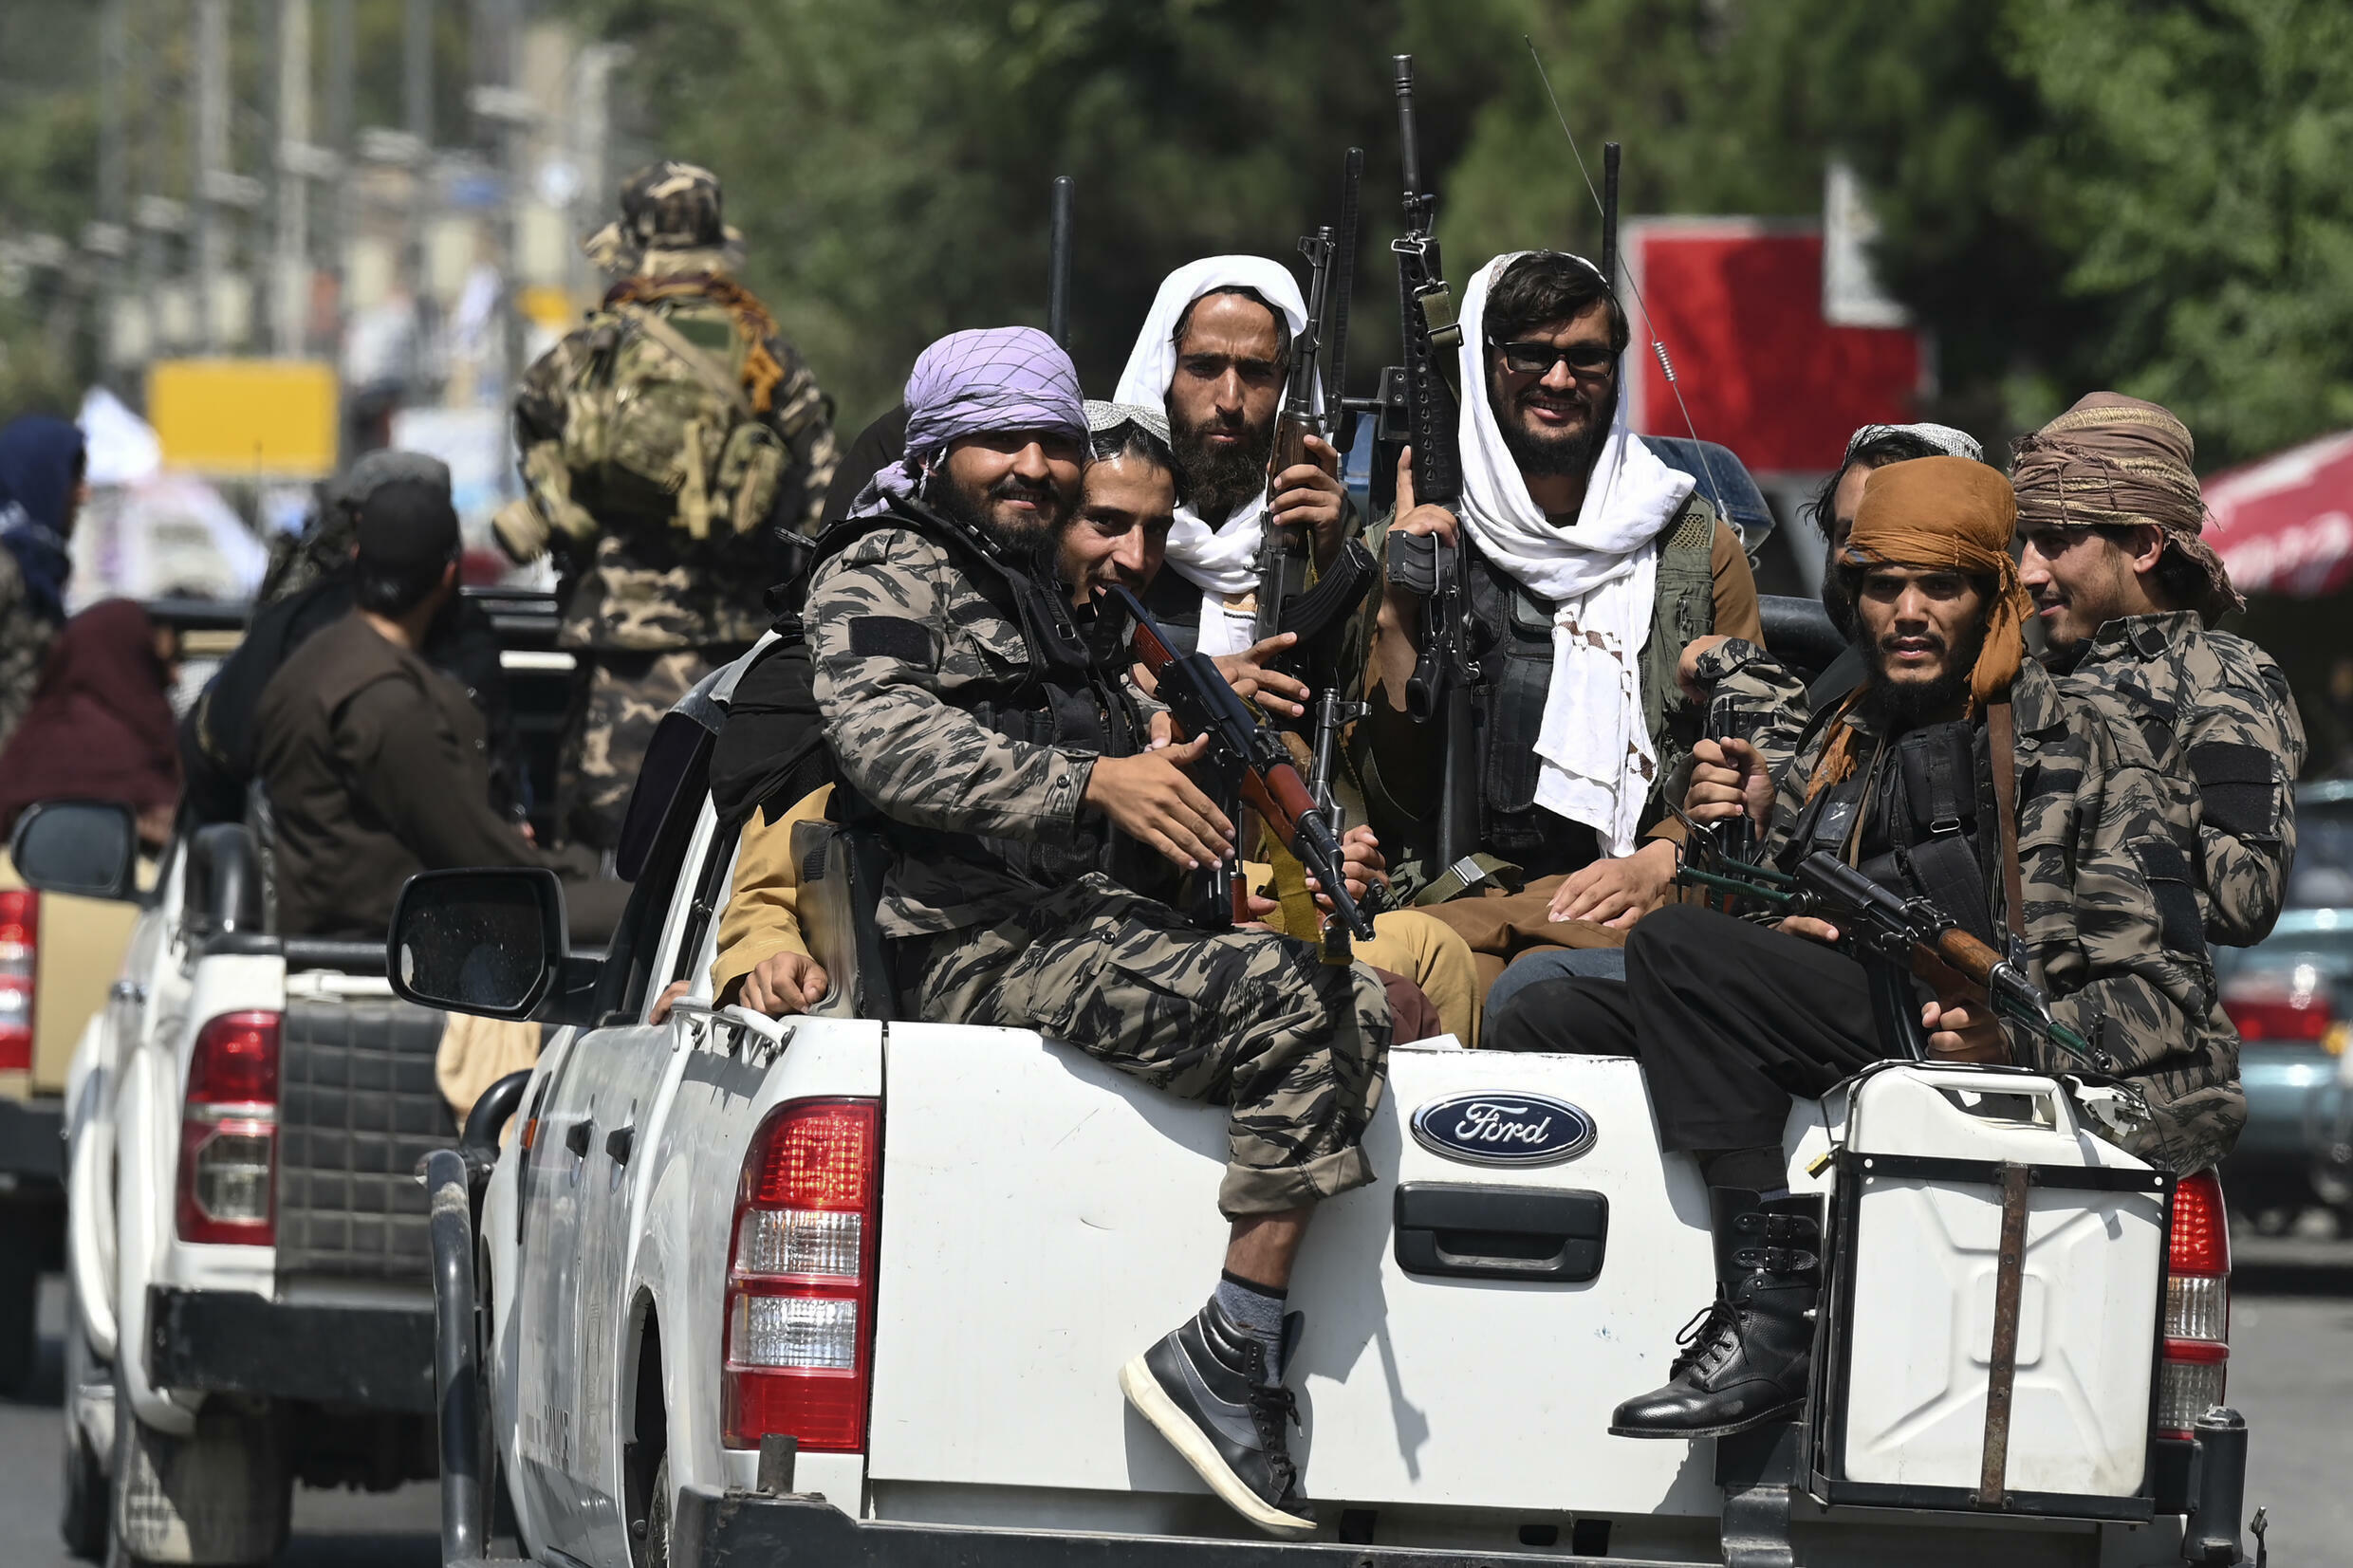 Taliban appear determined to defeat resistance before announcing government